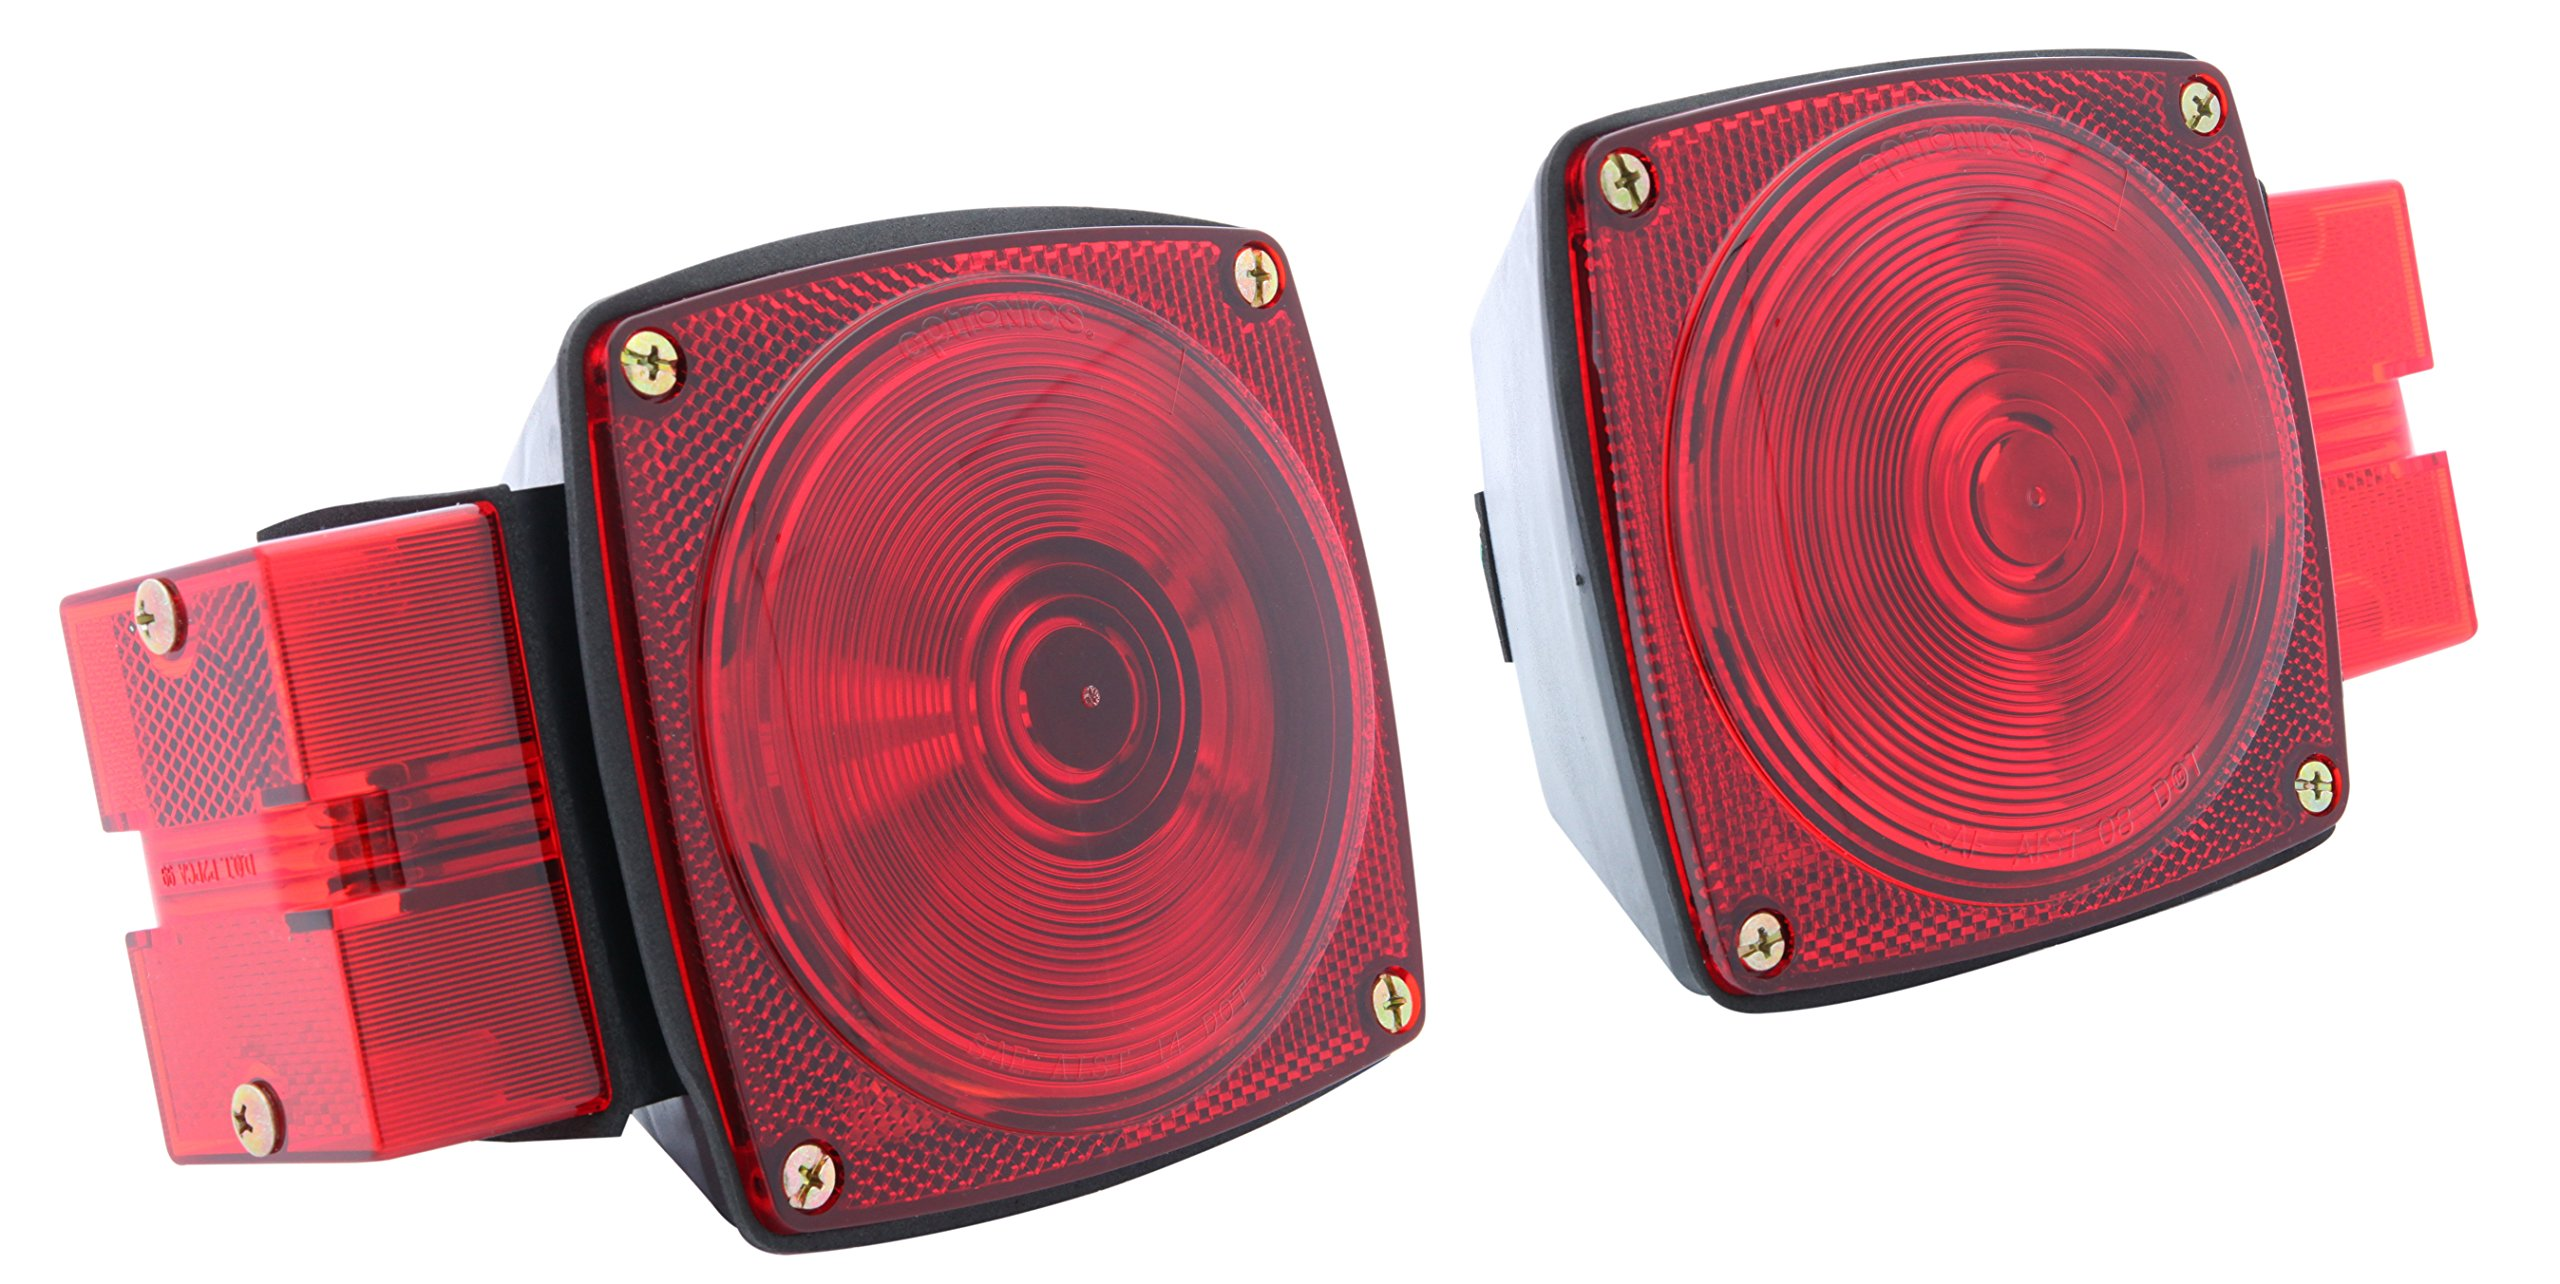 Optronics TL60RK Red Submersible 80 Combinations Tail Light Kit